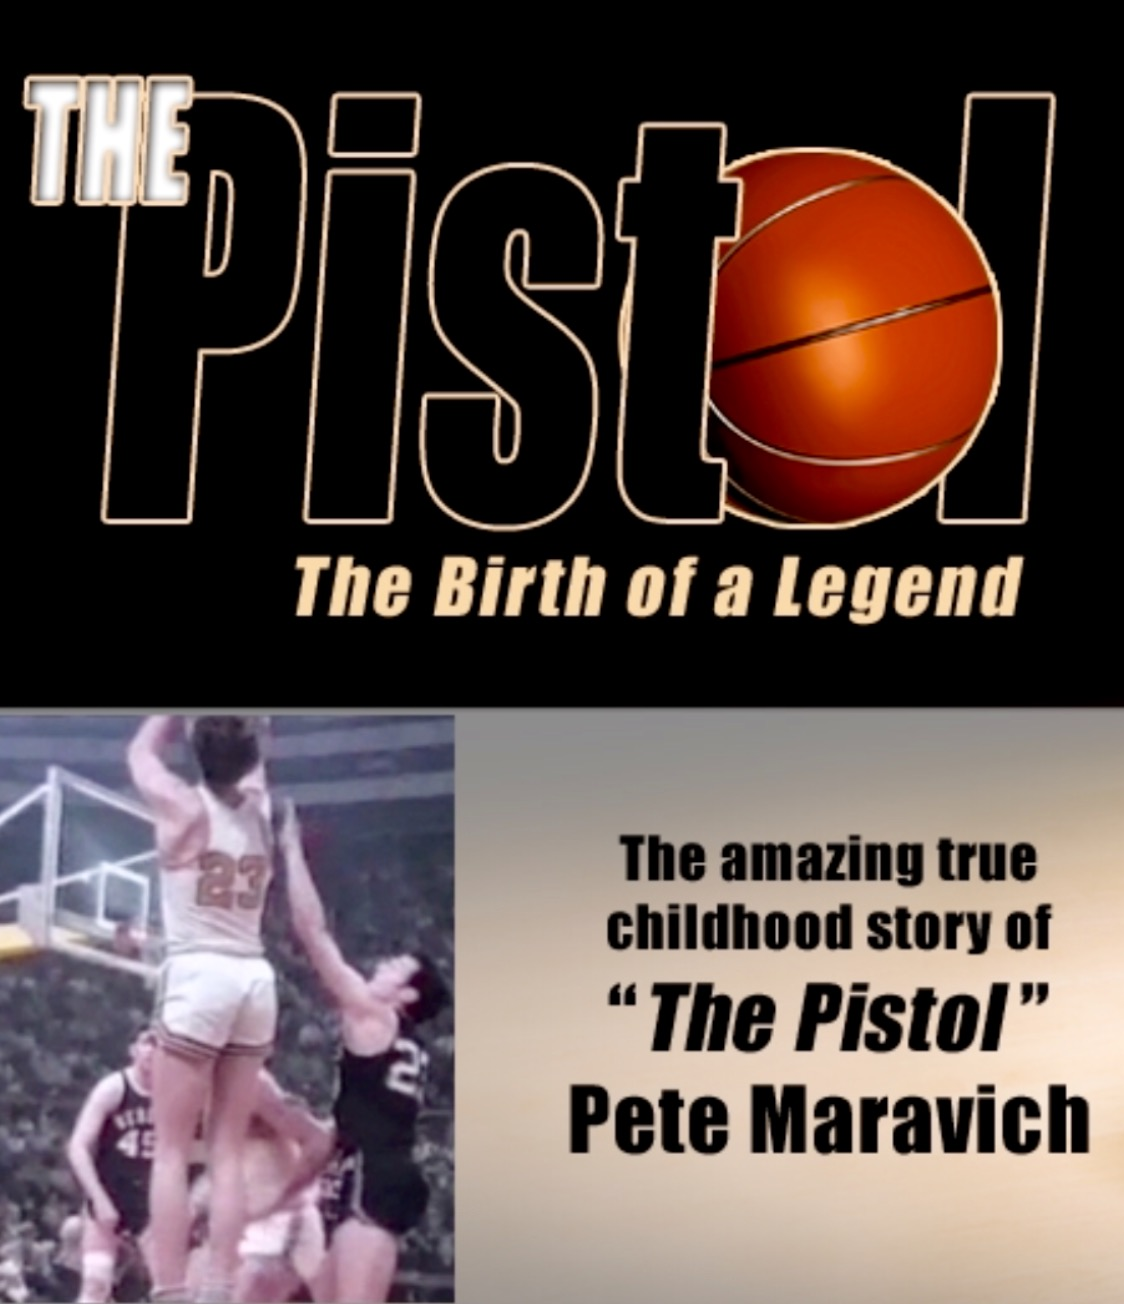 "THE PISTOL MOVIE - THE AMAZING TRUE CHILDHOOD STORY OF ""THE PISTOL"" PETE MARAVICH -- CHECK IT OUT"